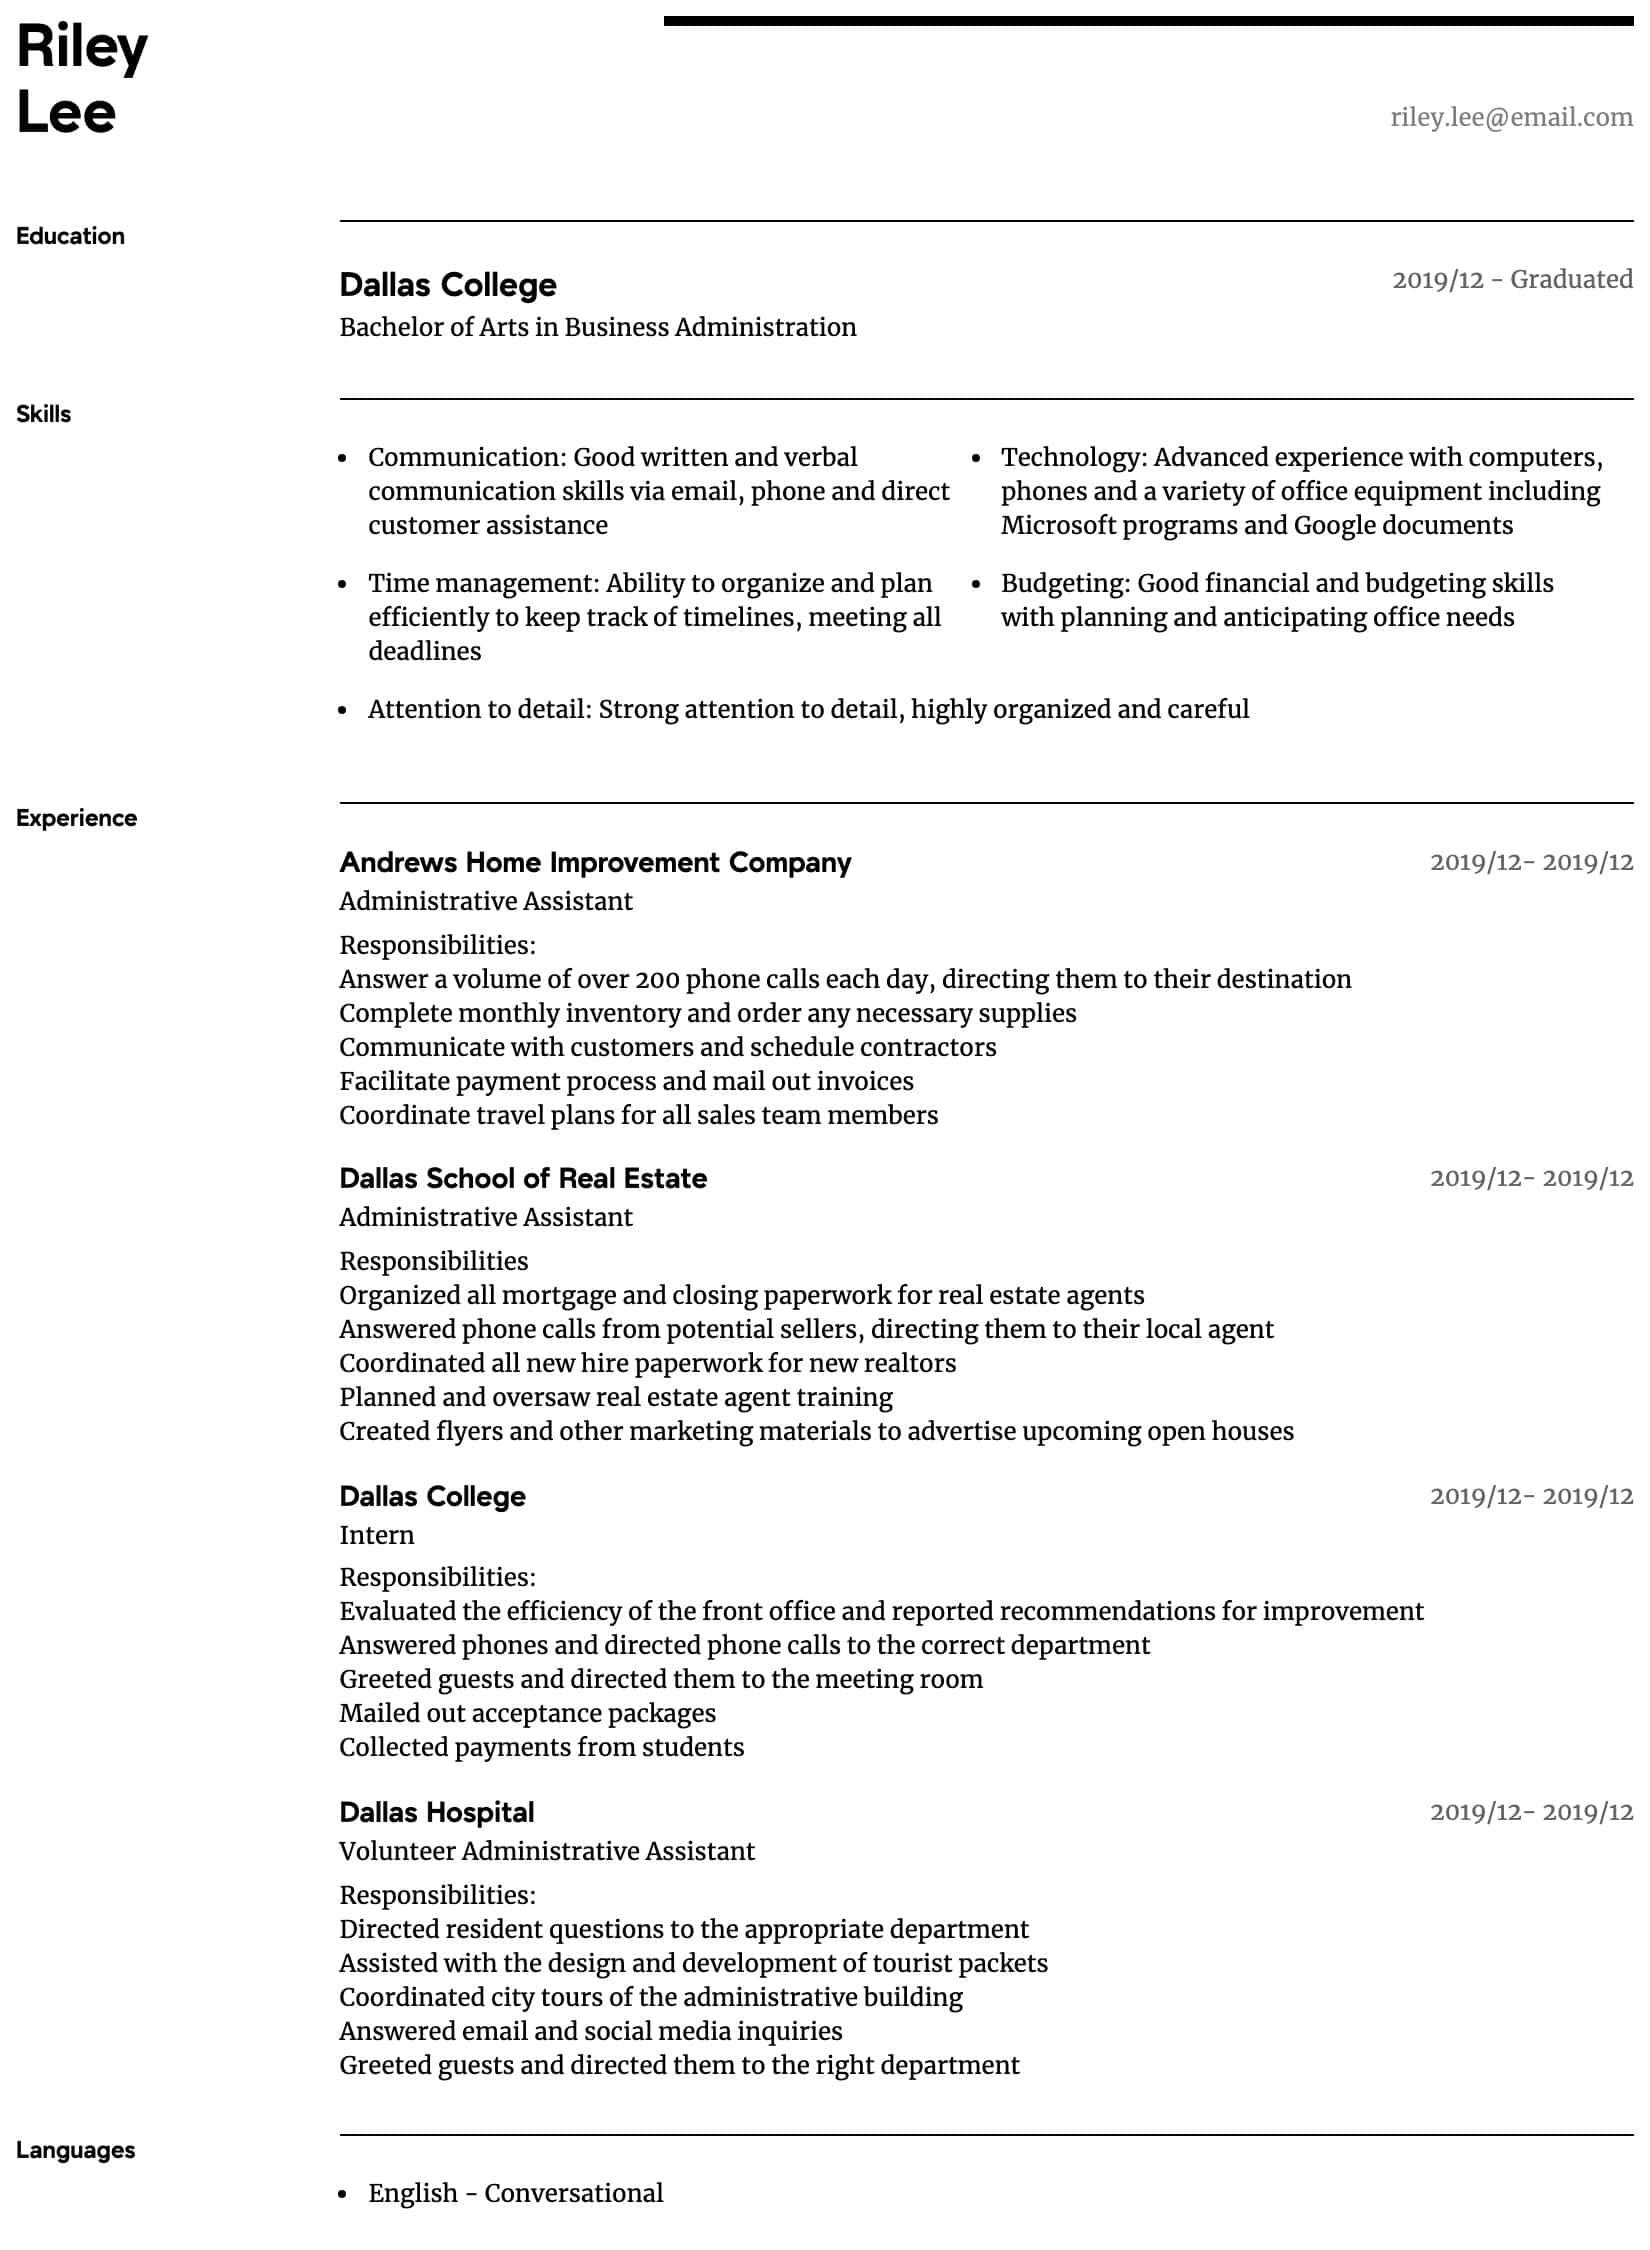 administrative assistant resume samples all experience levels skills for admin Resume Skills For Admin Assistant Resume